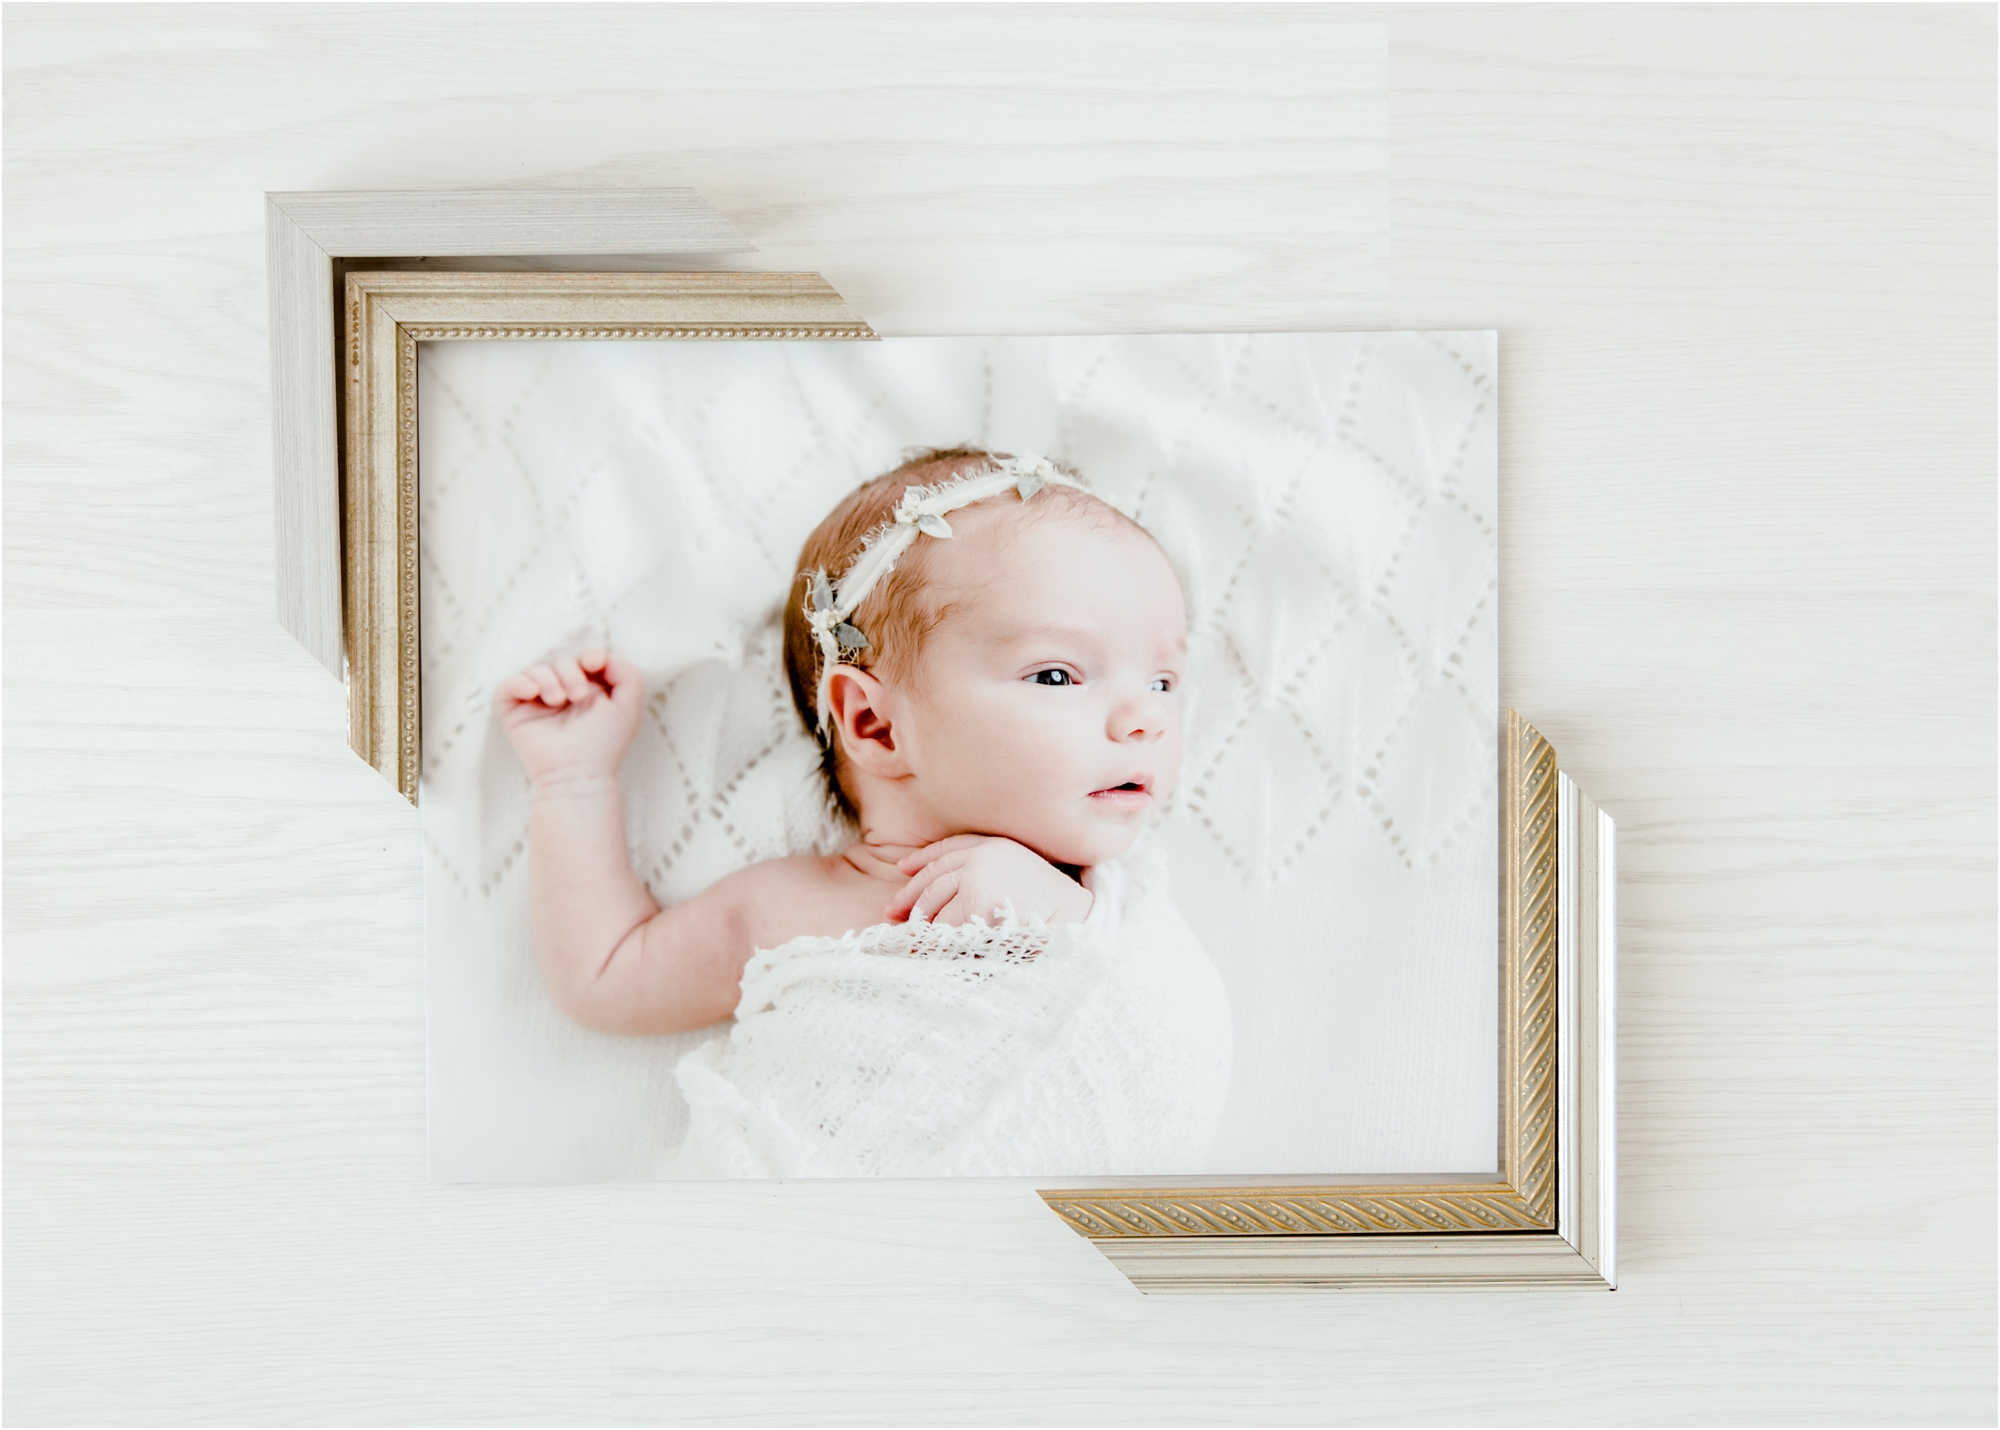 Flat lay of newborn image with frame corners. Photo by Lifetime of Clicks Photography.